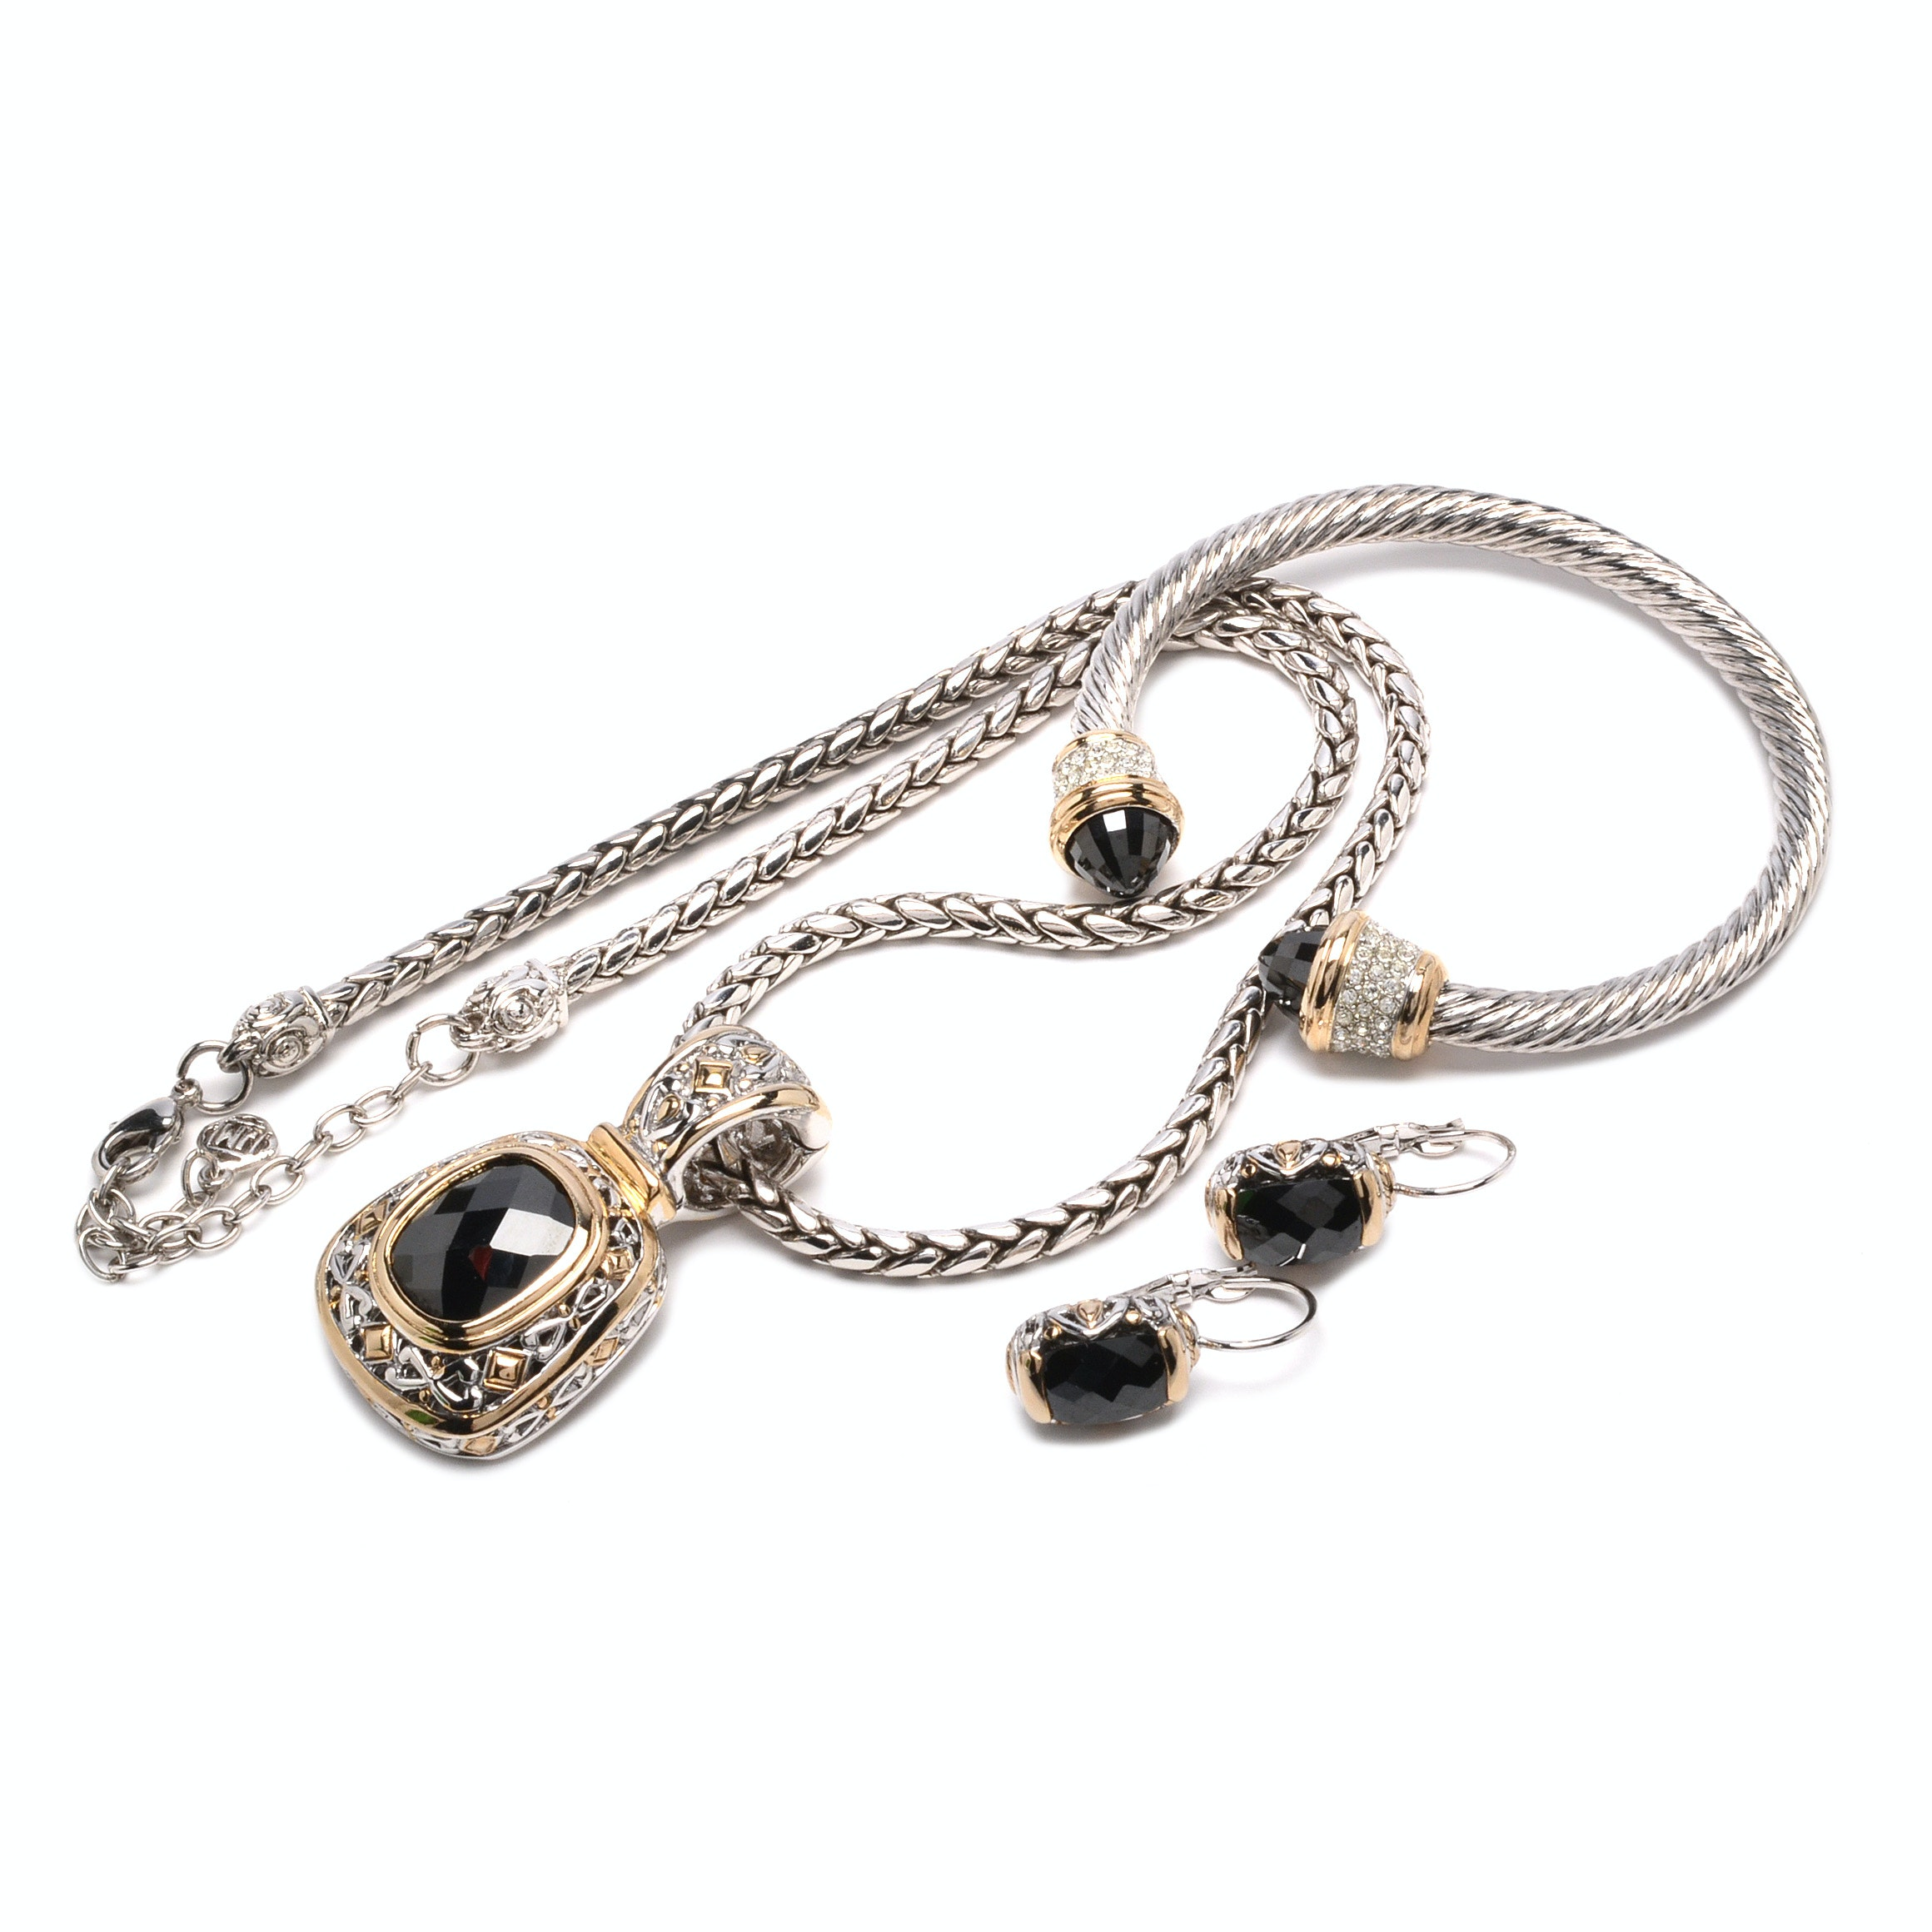 John Medeiros Jewelry With Black Faceted Cubic Zirconia